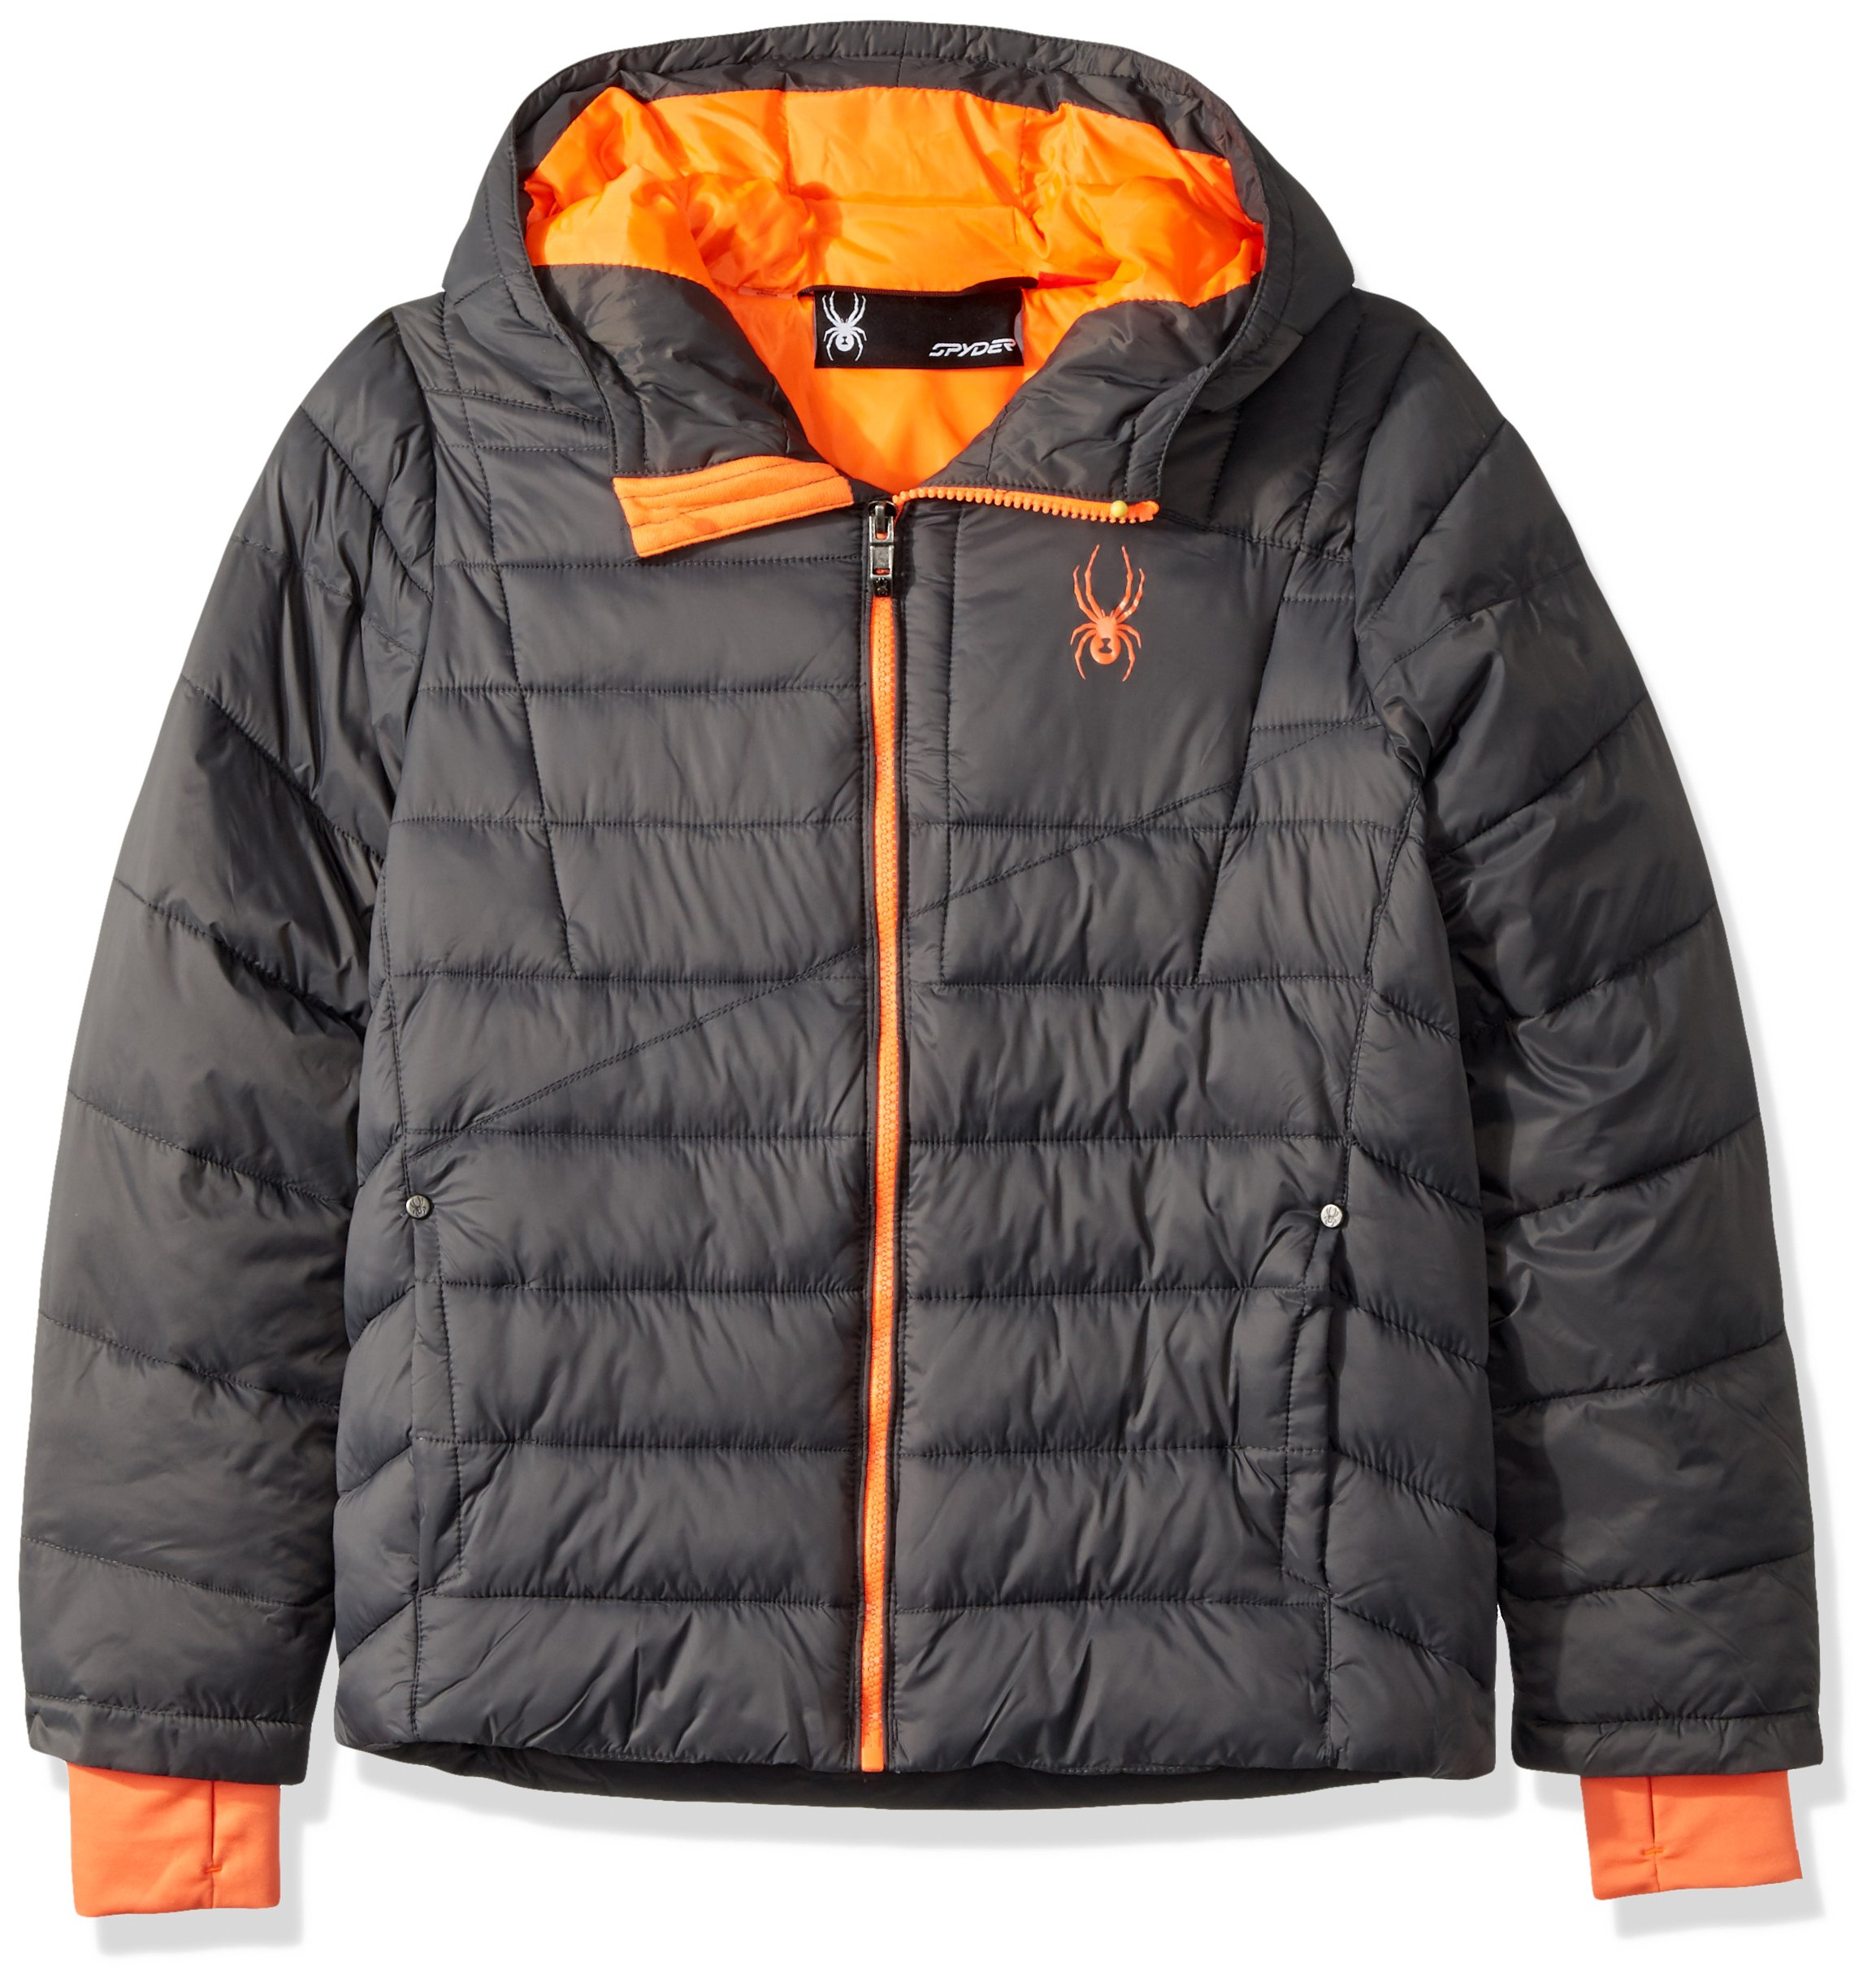 Spyder Big Boys' Upside Down Jacket, Polar, XL by Spyder